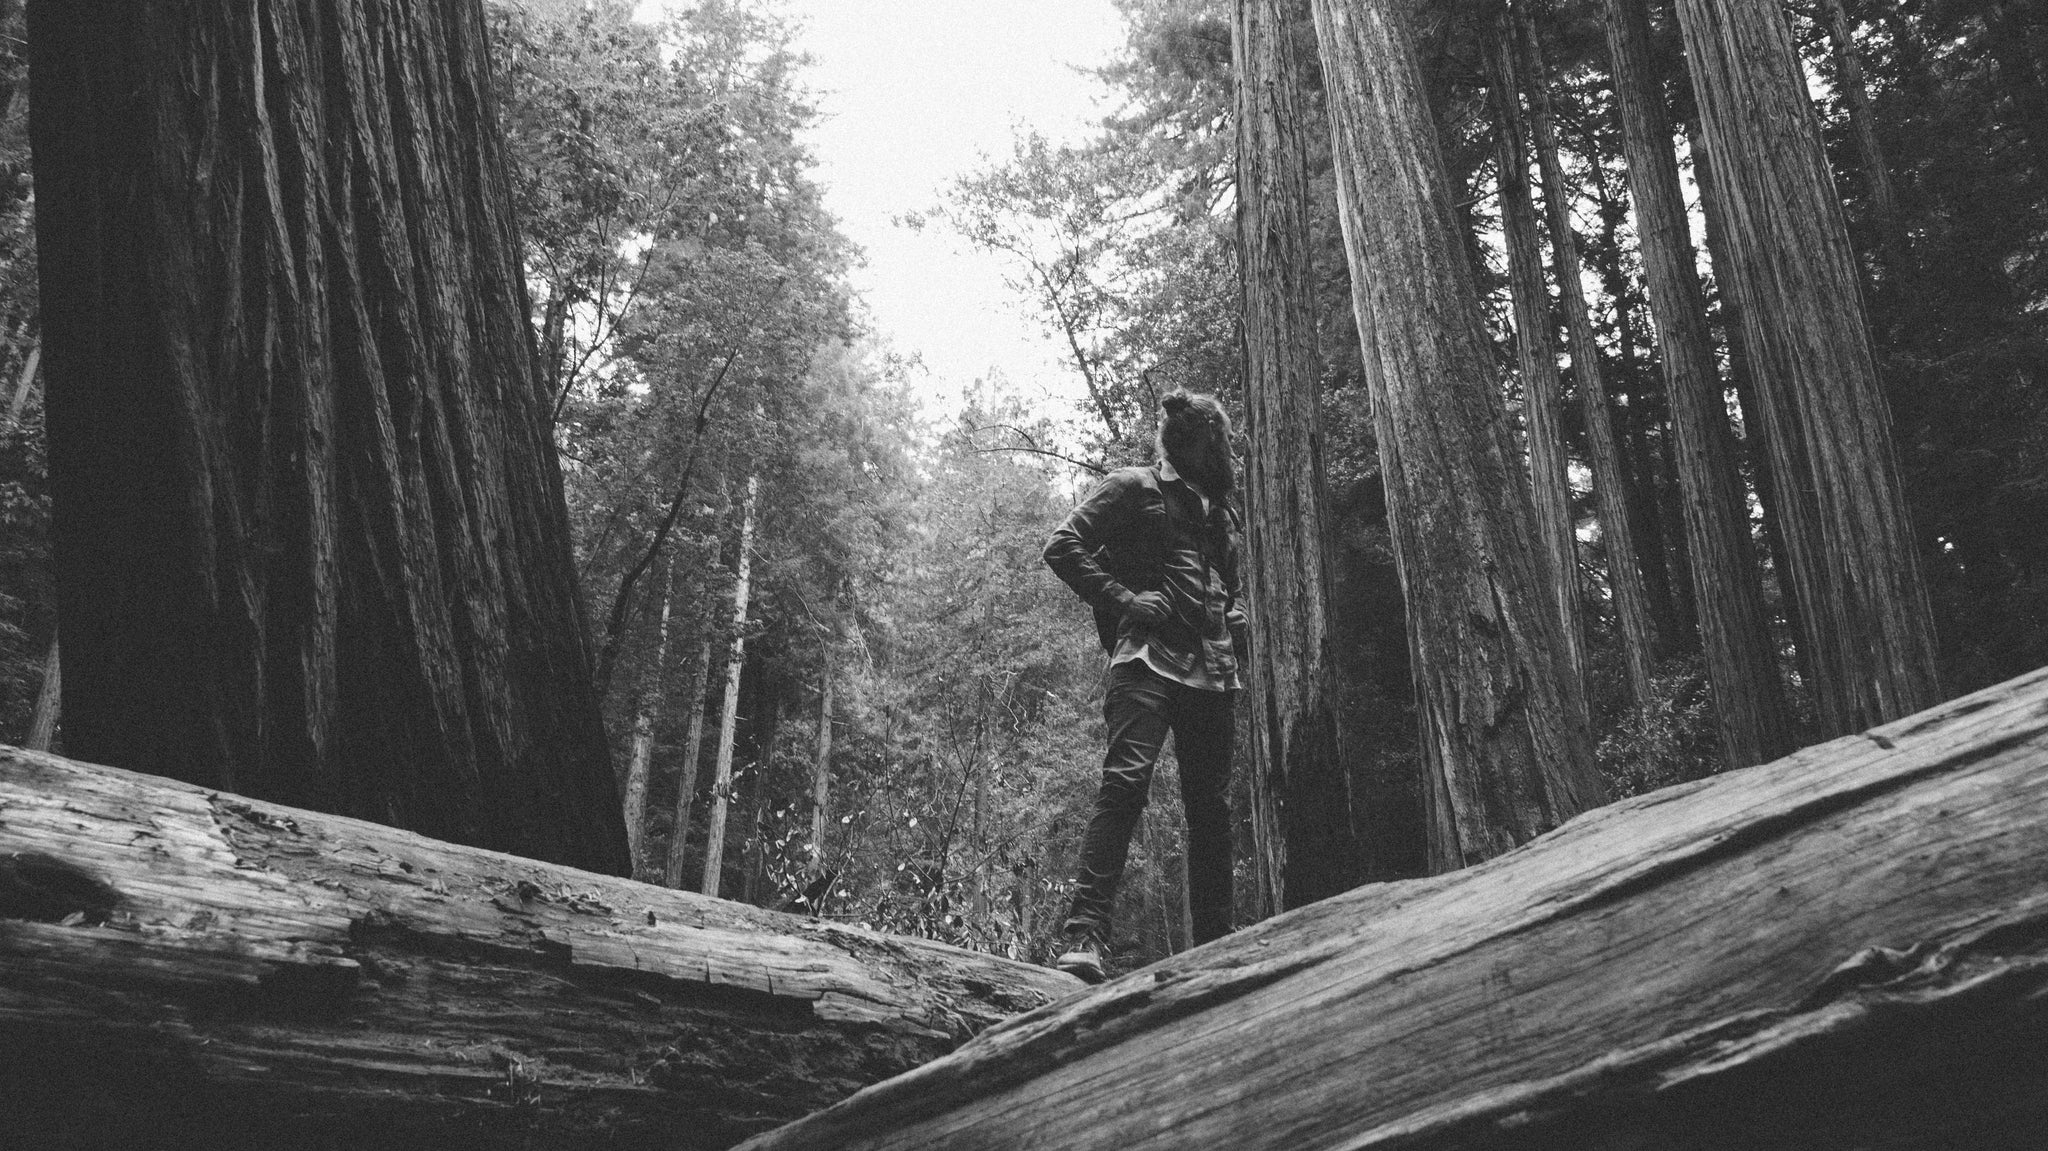 Muirwoods-sanfrancisco-california-hike-thennowalways